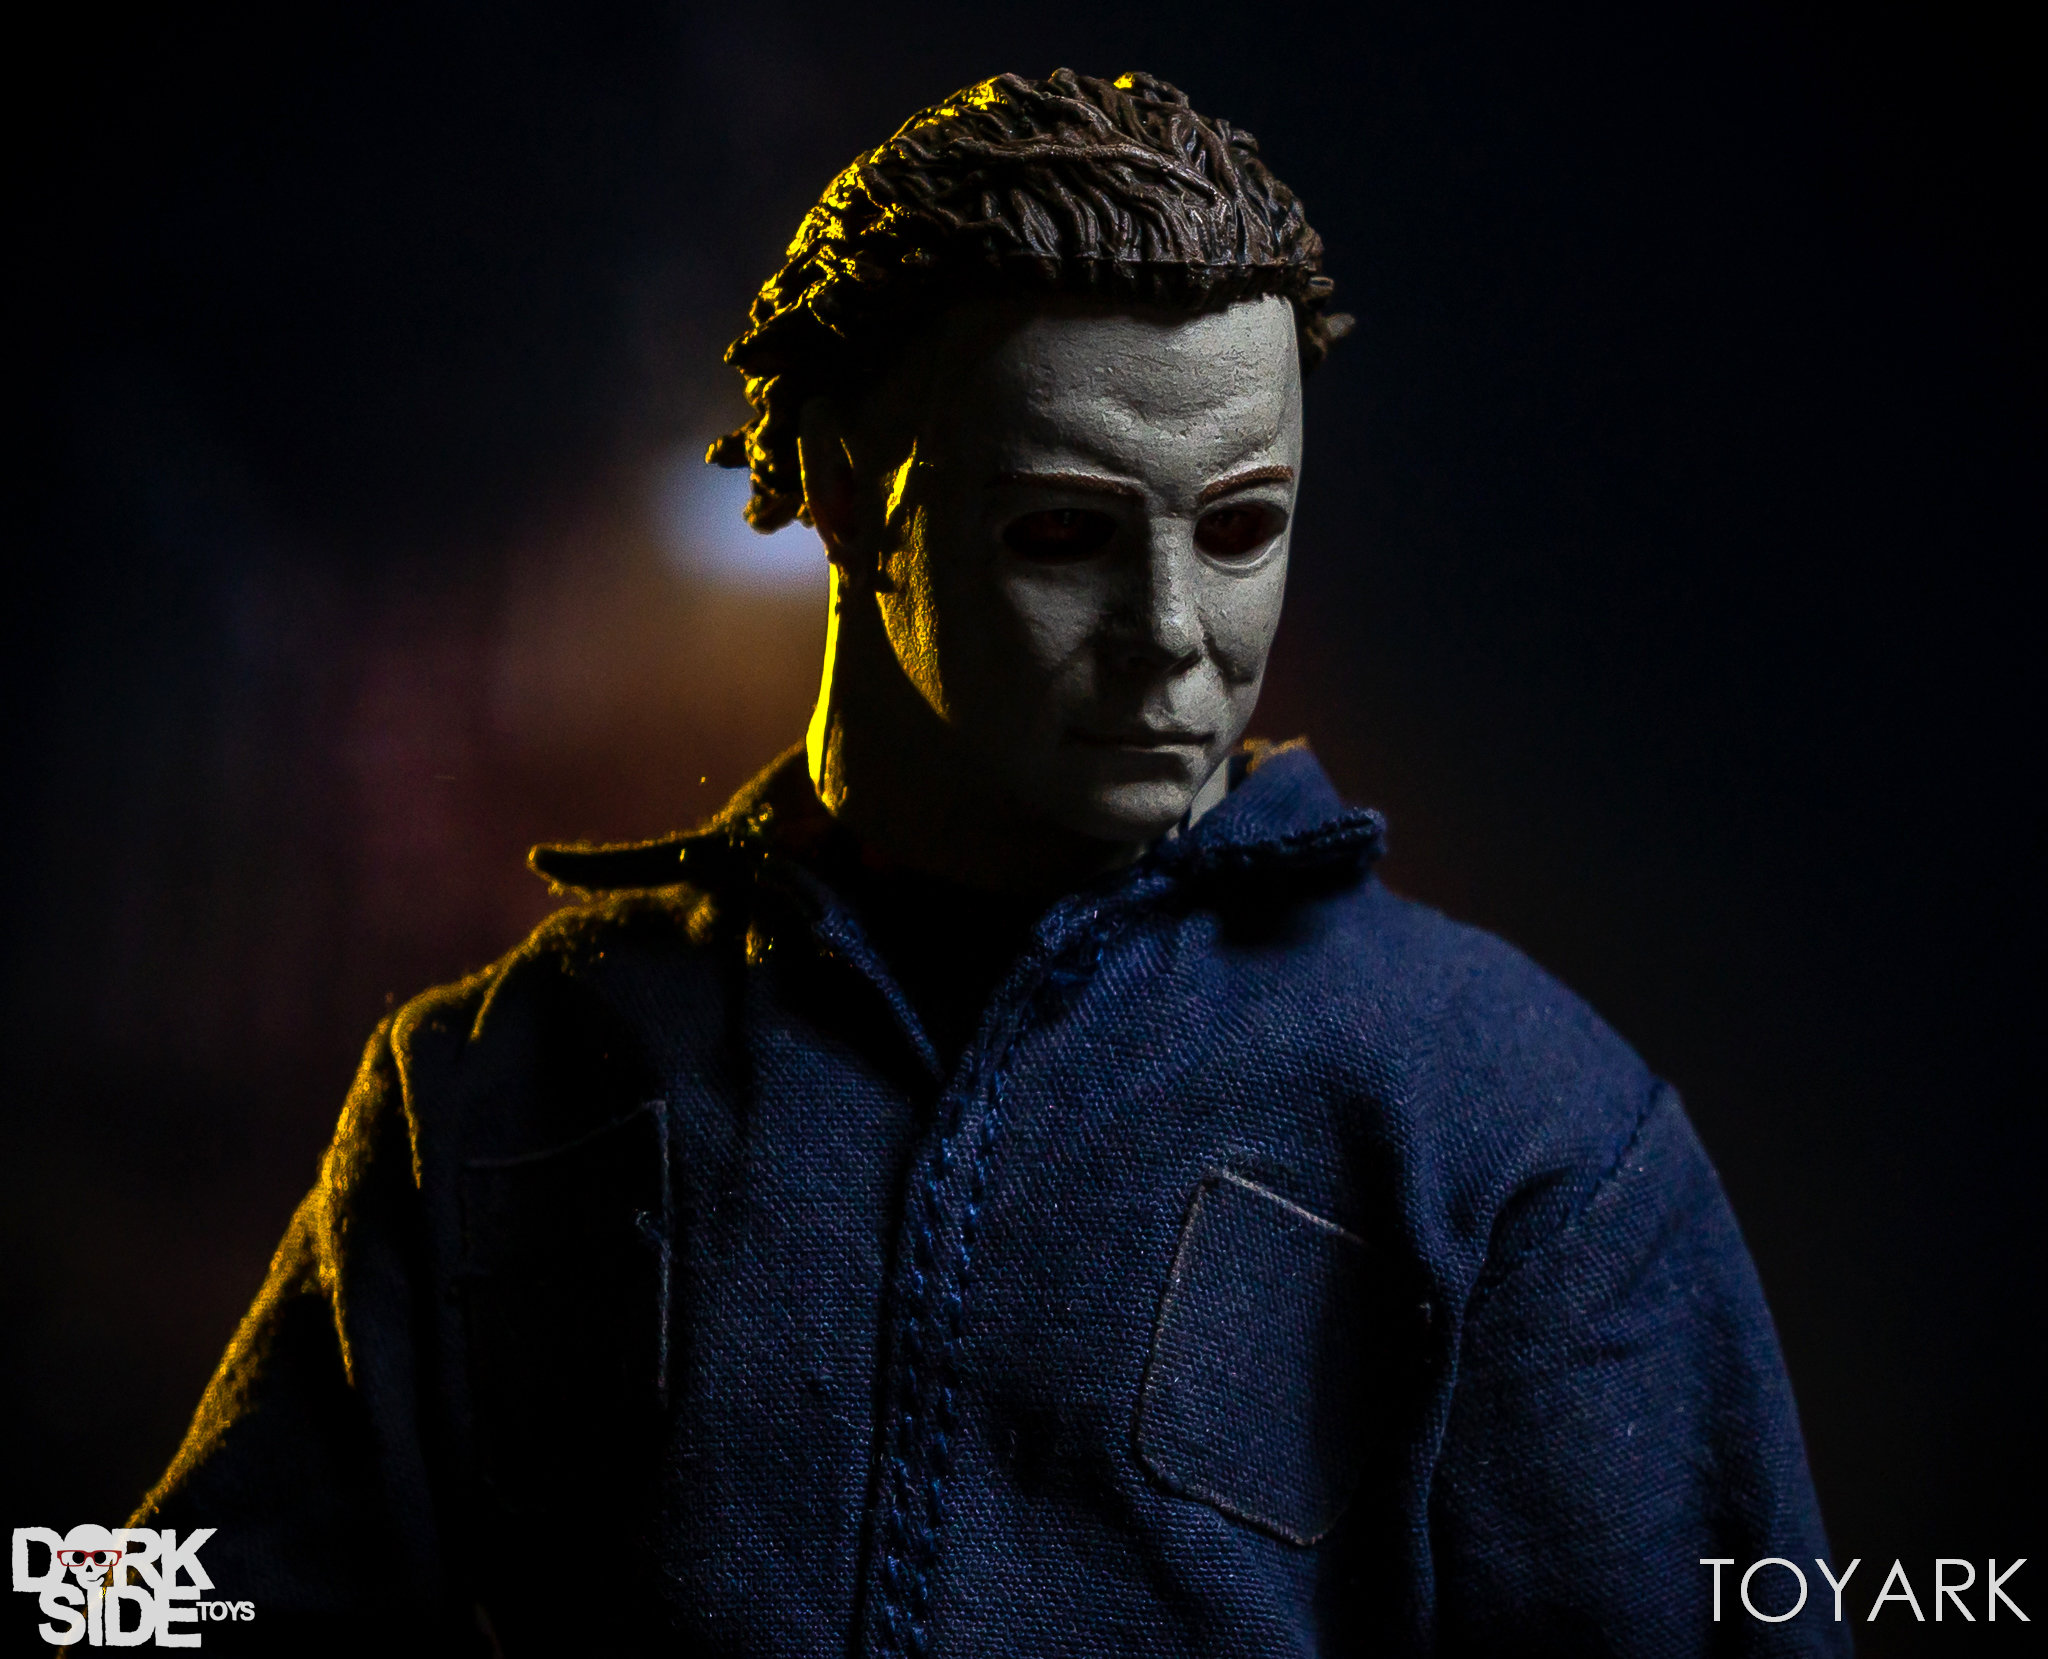 https://news.toyark.com/wp-content/uploads/sites/4/2018/10/Mezco-One12-Michael-Myers-053.jpg